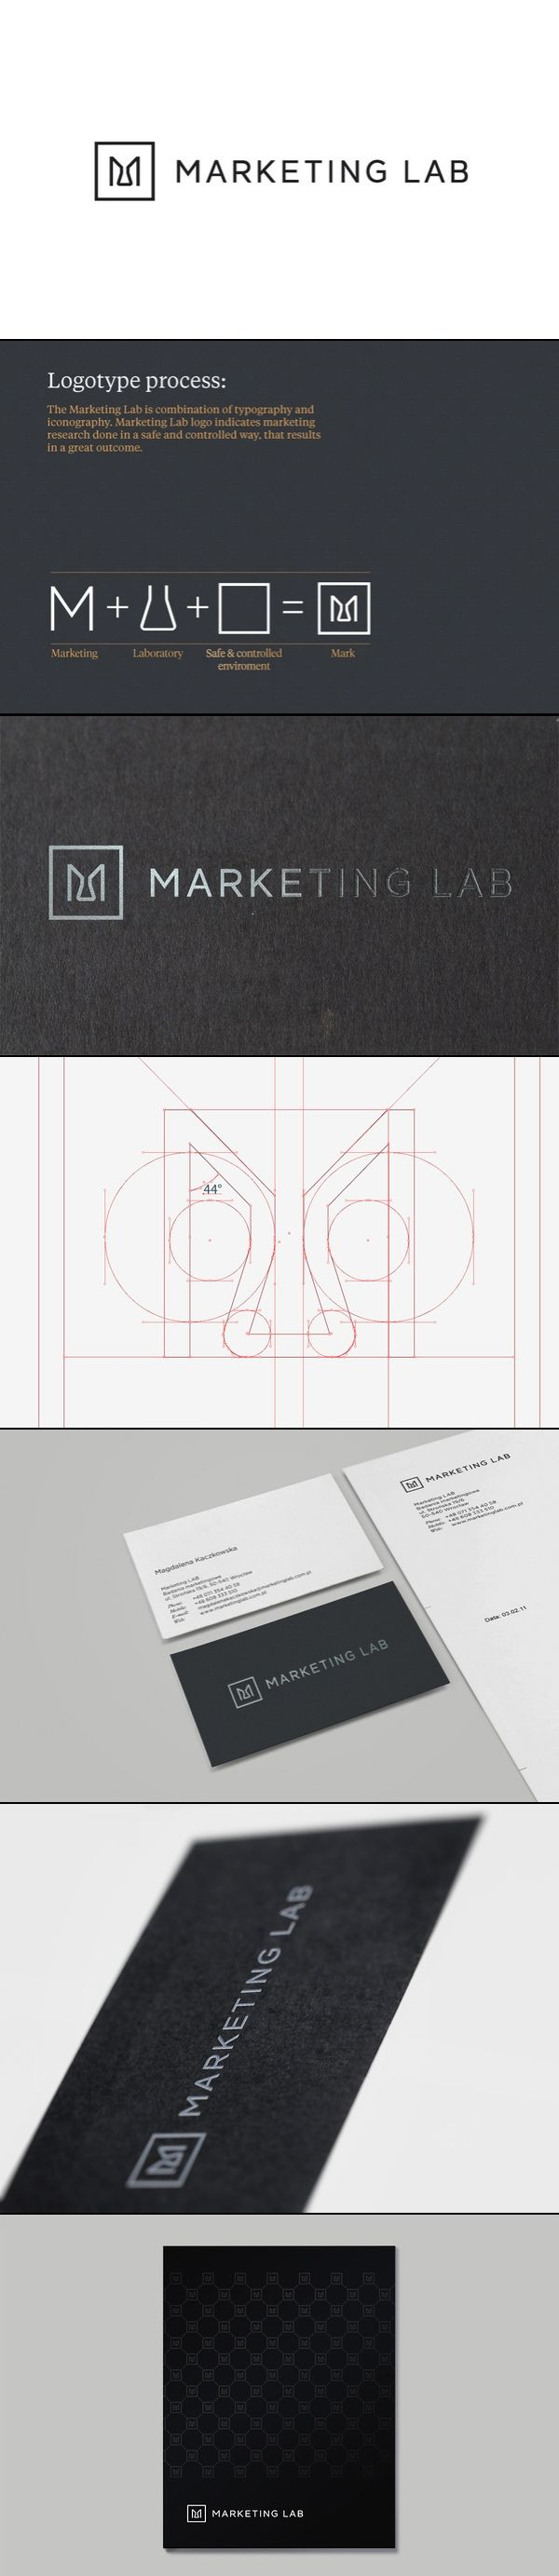 17 best ideas about creative logo logo inspiration 17 best ideas about creative logo logo inspiration logos and negative space logos